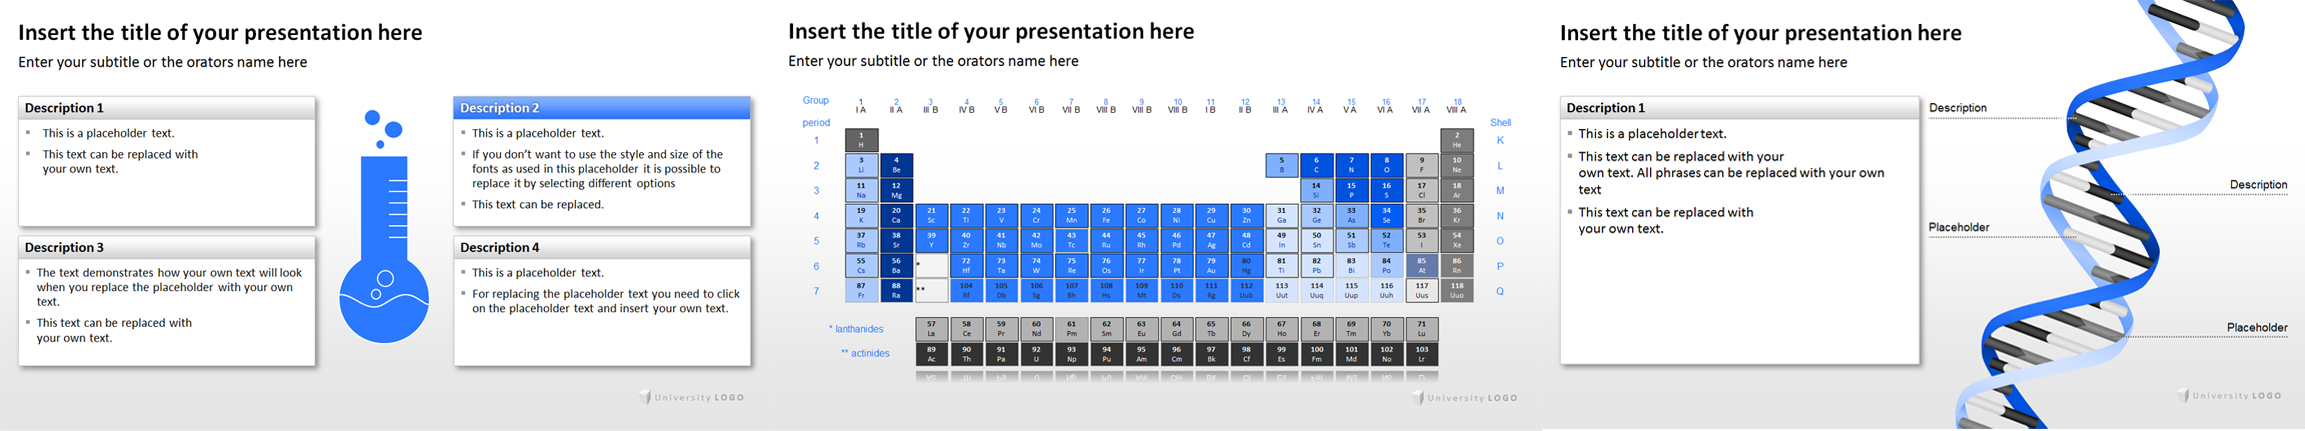 scientific presentation powerpoint template image collections, Presentation templates